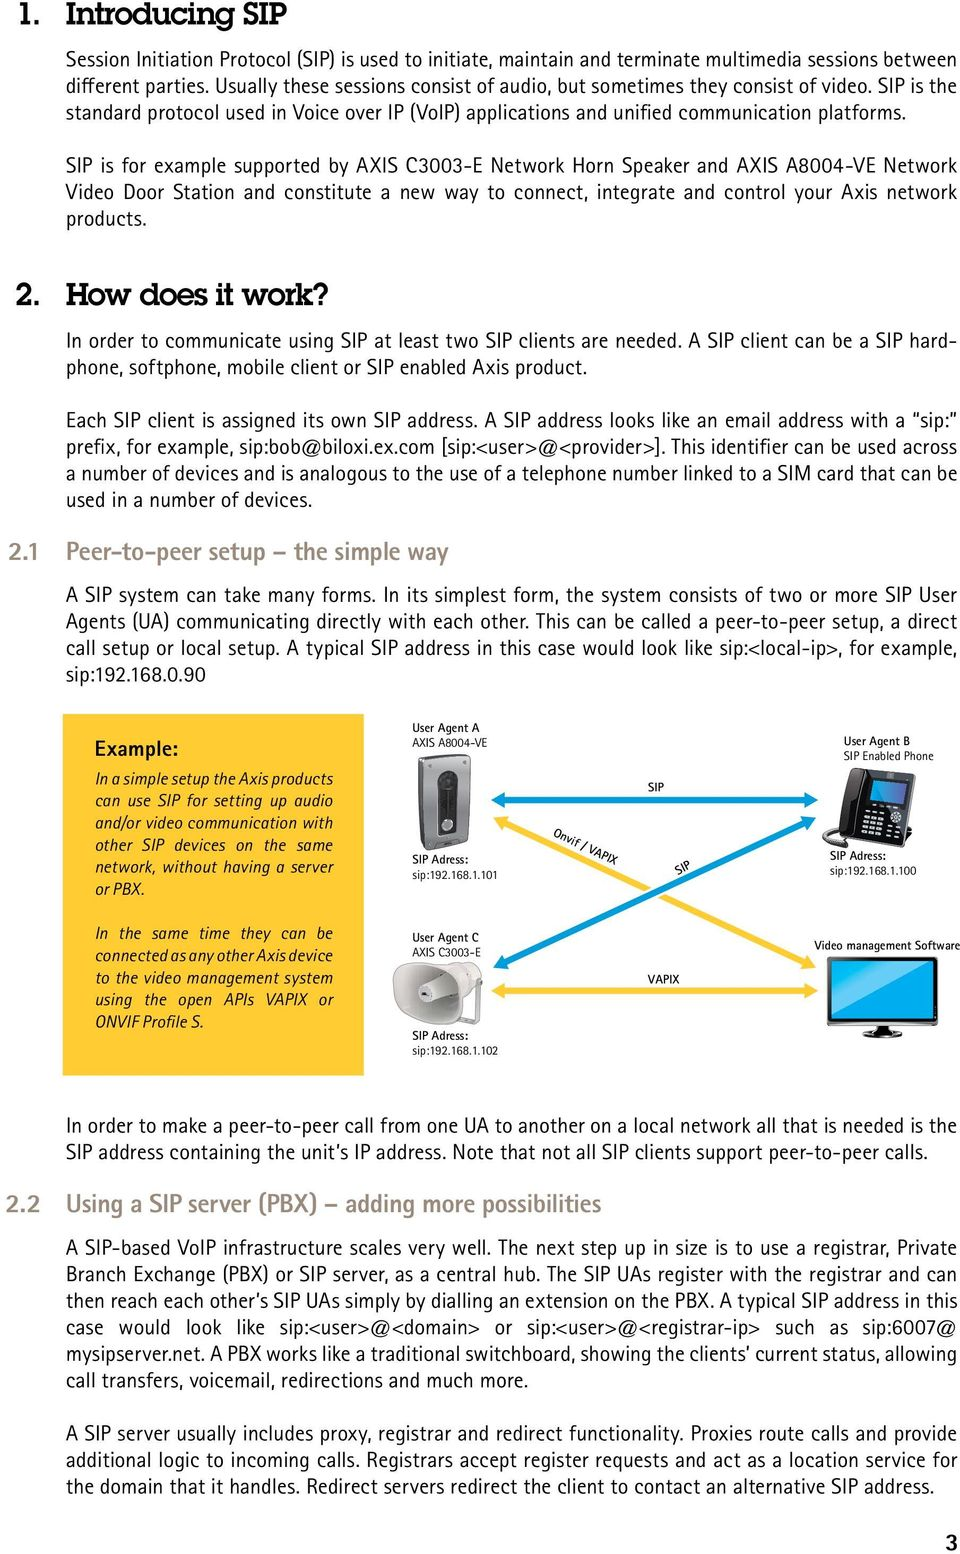 White paper  SIP An introduction - PDF